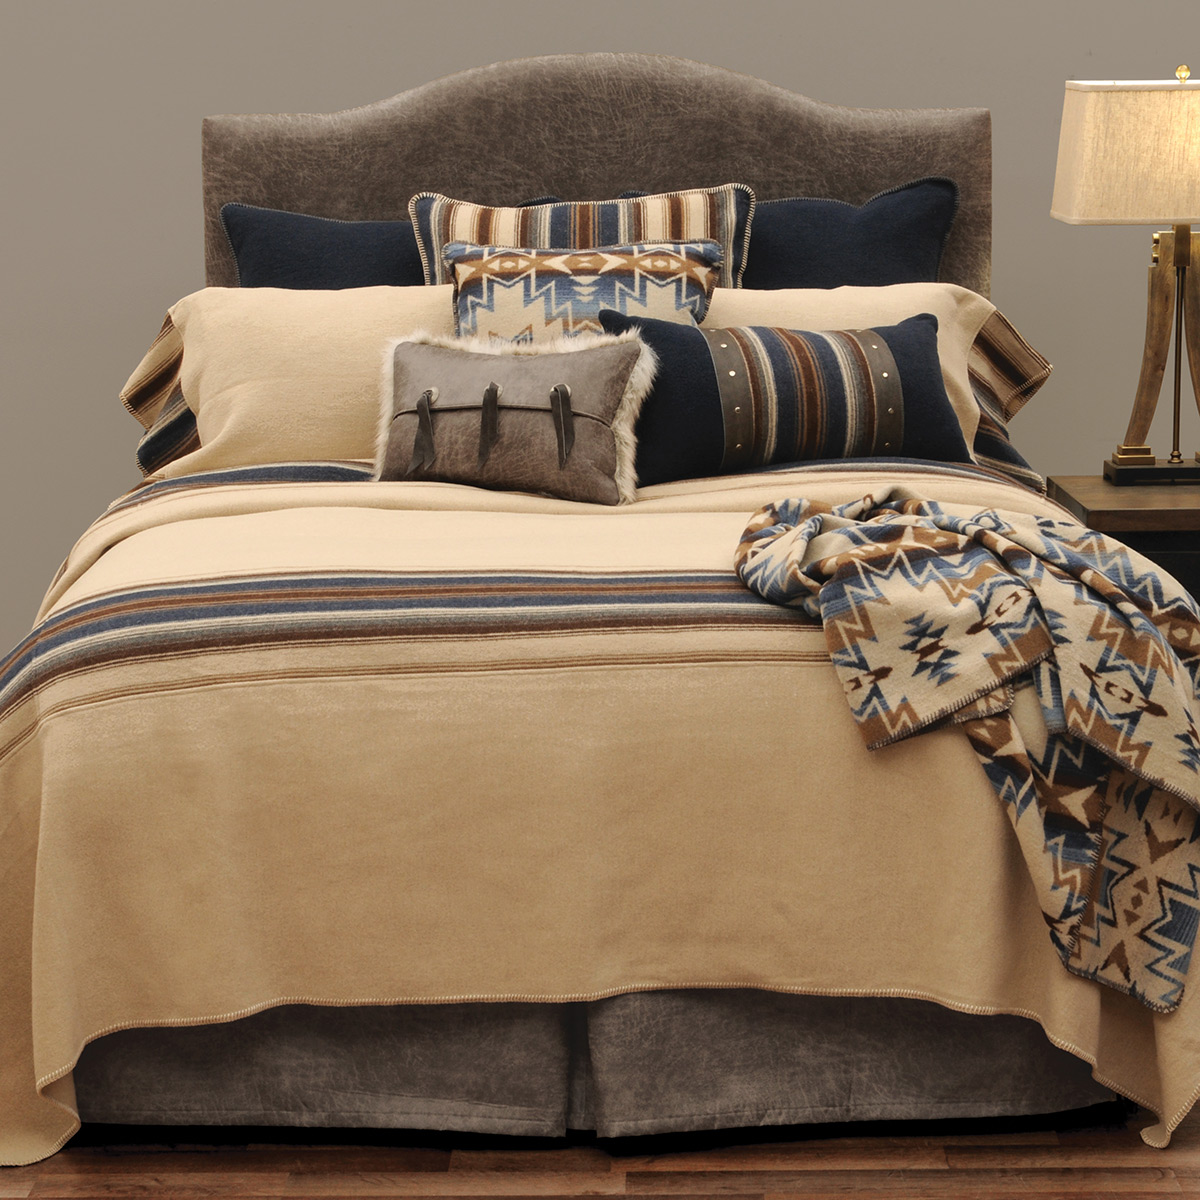 Cadillac Ranch Deluxe Bed Set - Cal King